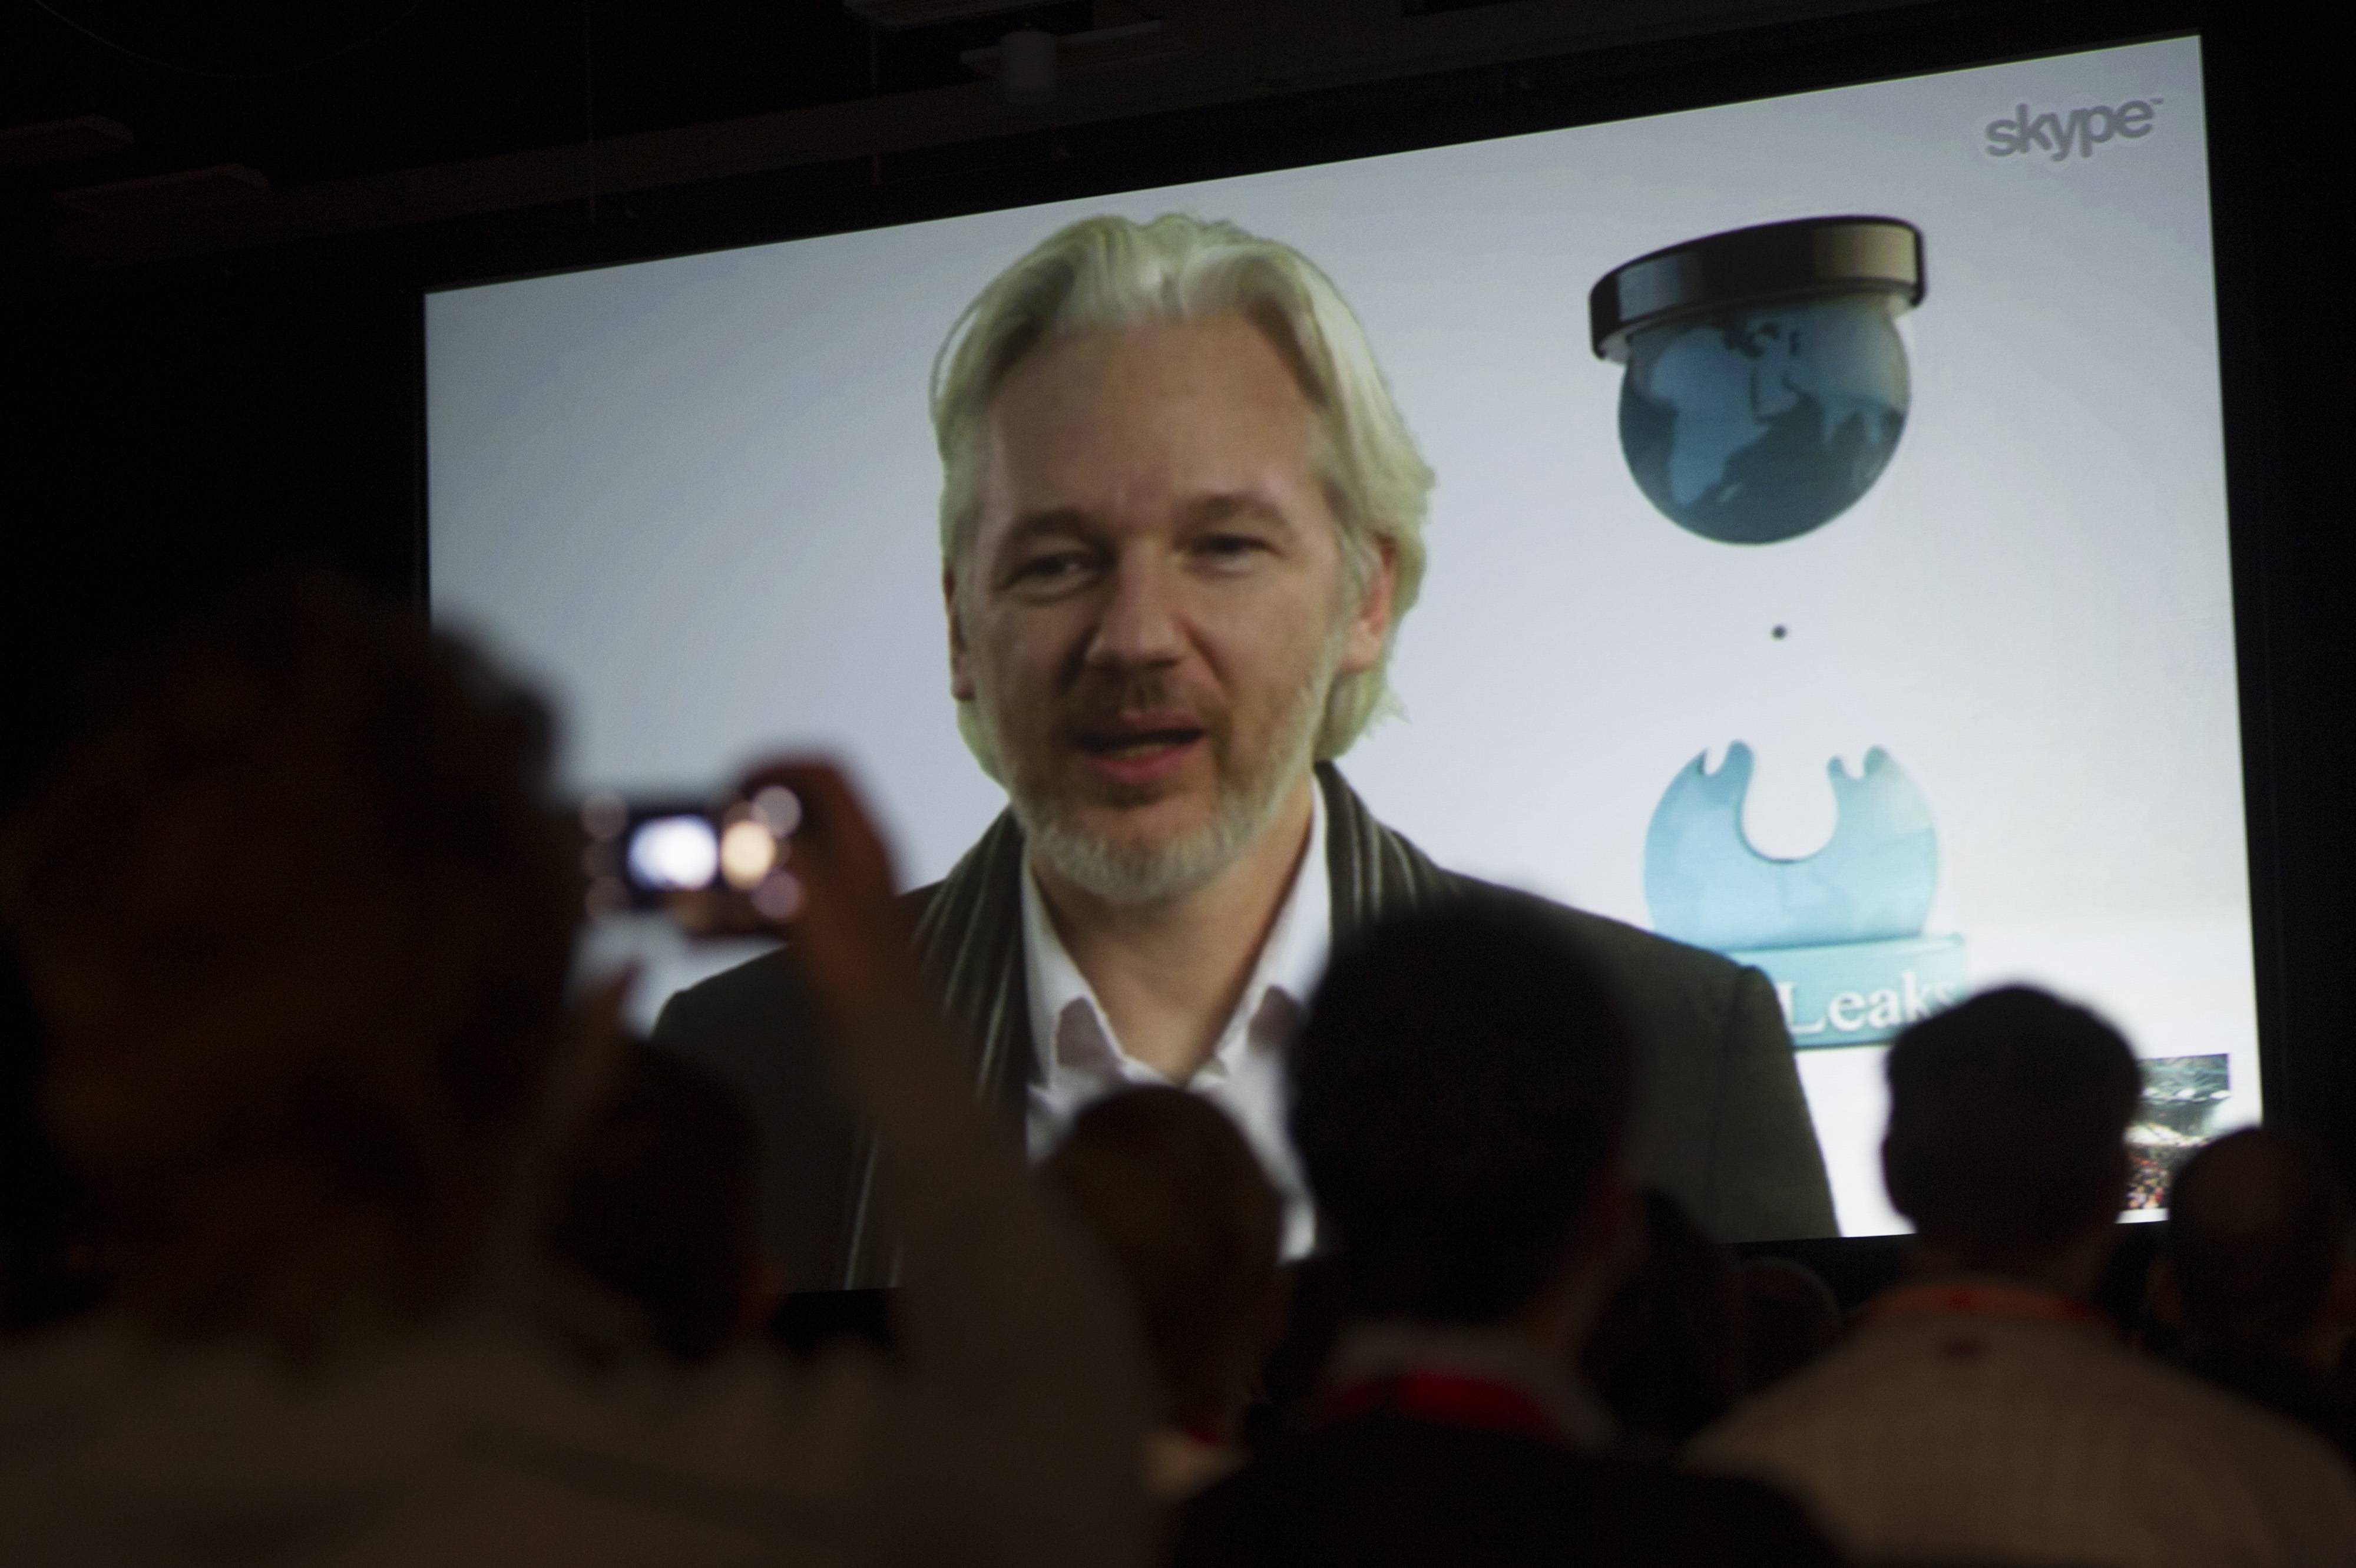 Julian Assange, founder of the WikiLeaks website, speaks during a panel discussion at the South By Southwest (SXSW) Interactive Festival in Austin, Texas, U.S., on March 8, 2014.